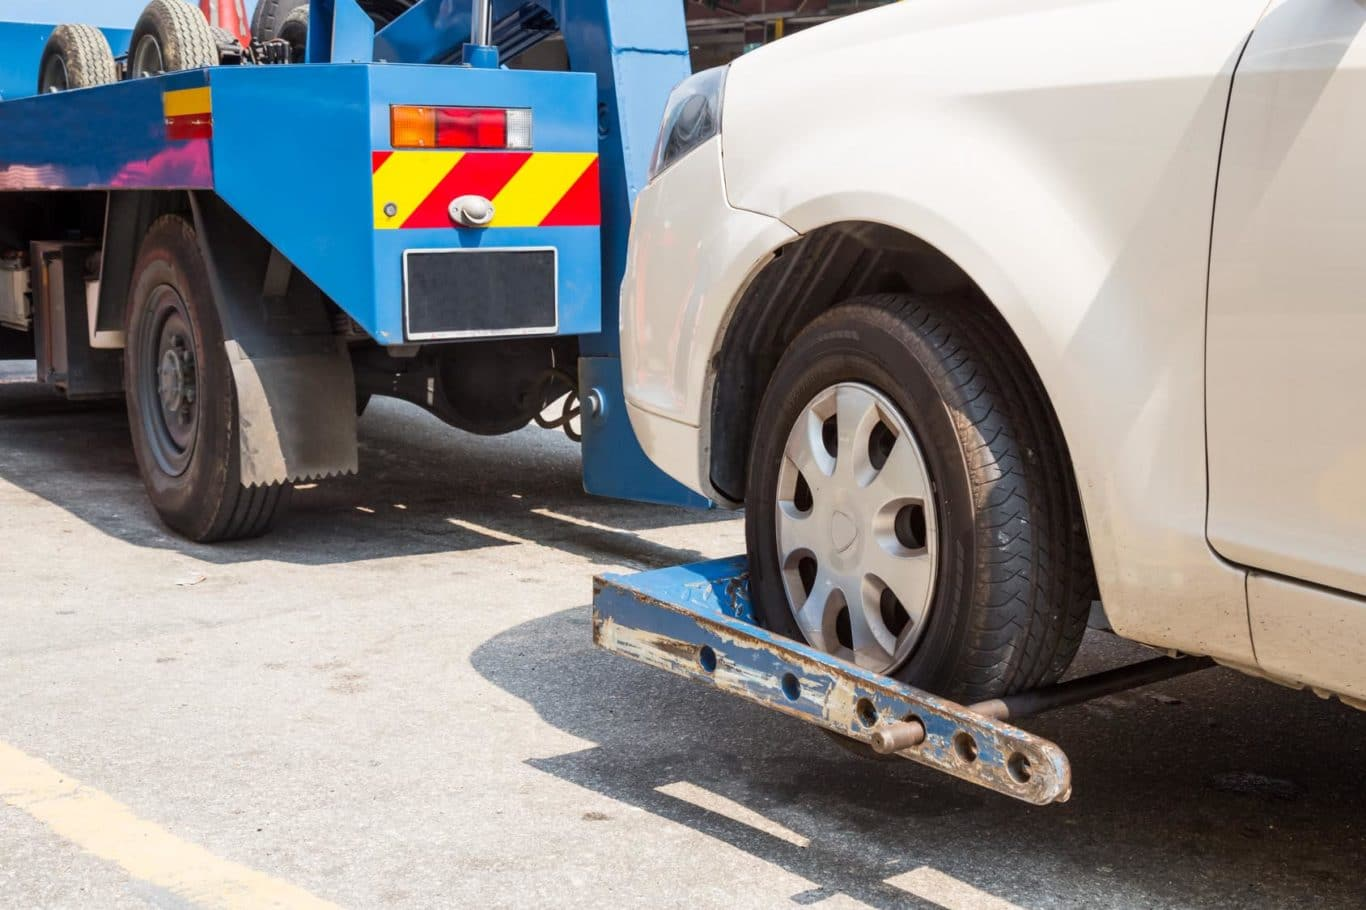 Allen expert Car Towing services